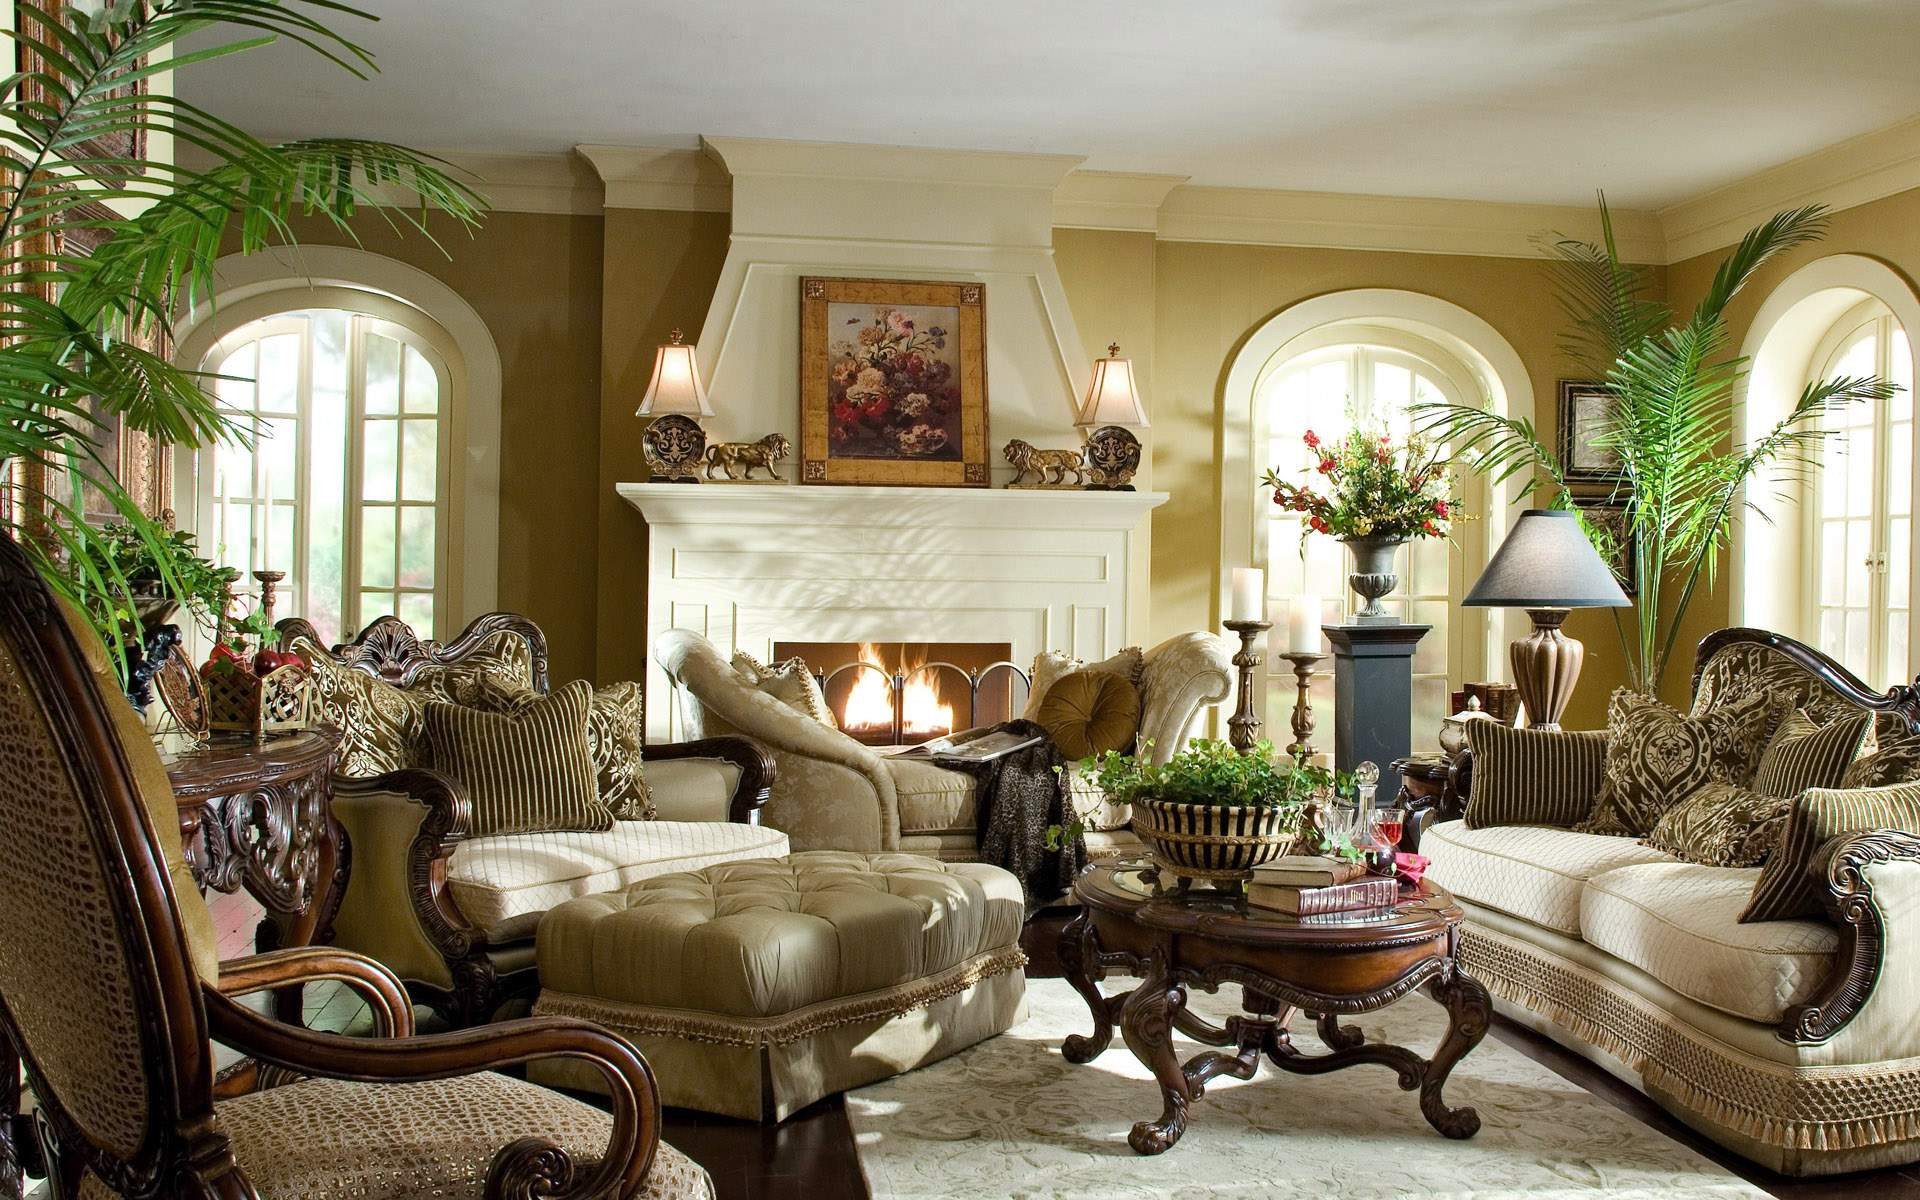 Best ideas about Furniture Ideas For Living Room . Save or Pin Victorian Living Room Ideas Now.